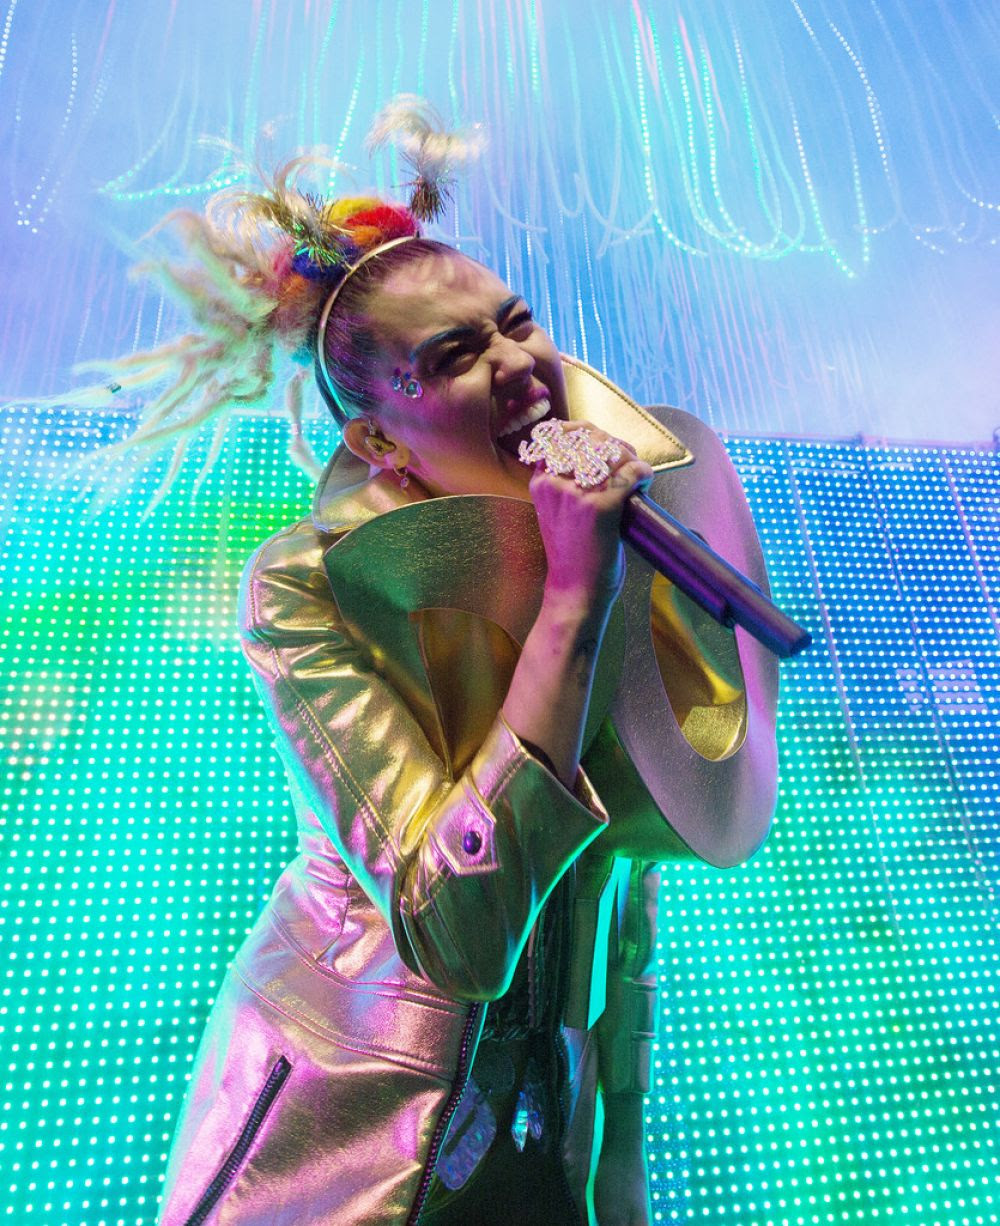 MILEY CYRUS Performs at The Milky, Milky, Milk Tour in Chicago 11/19/2015